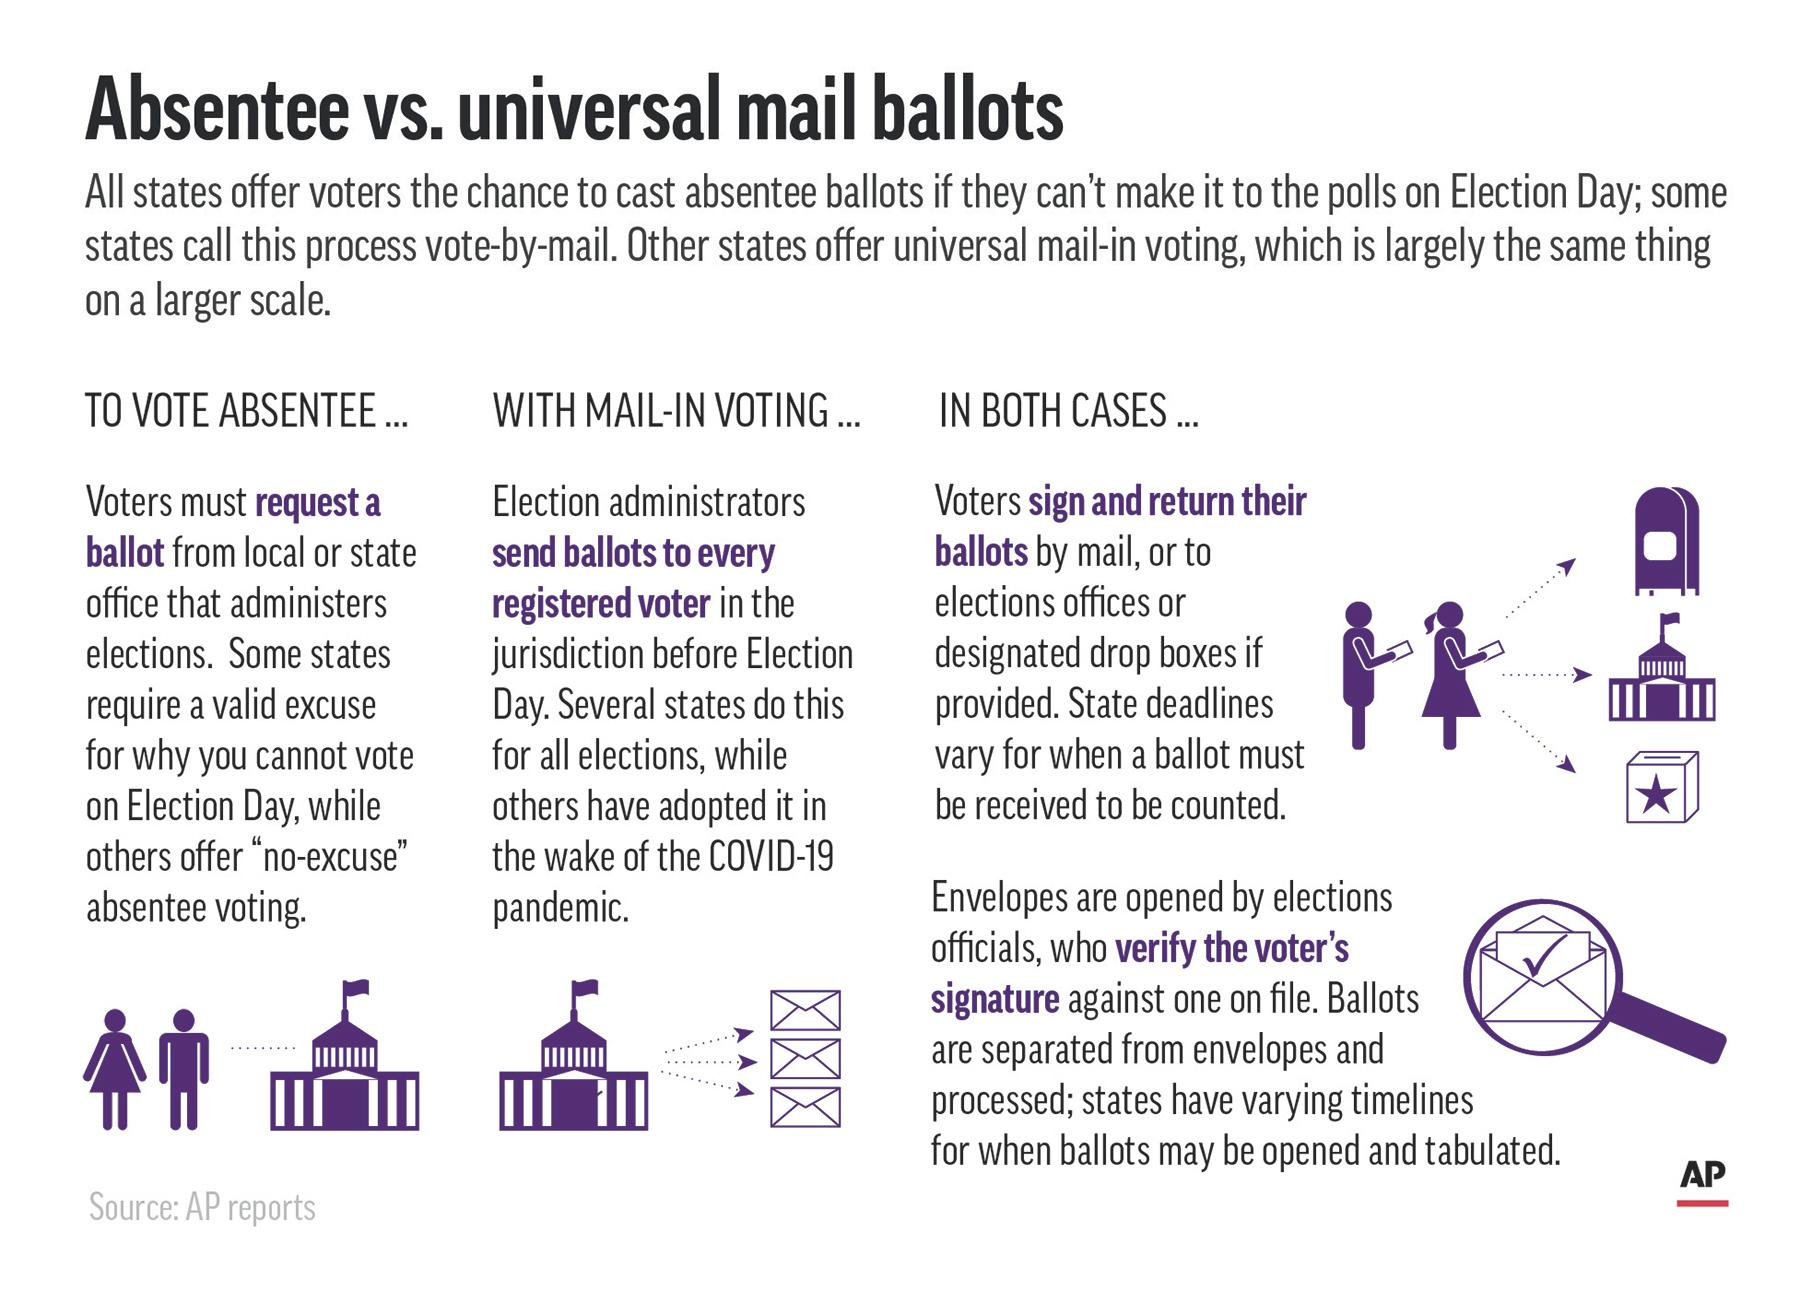 Graphic shows absentee and universal mail-in voting procedures. (Click to enlarge.)